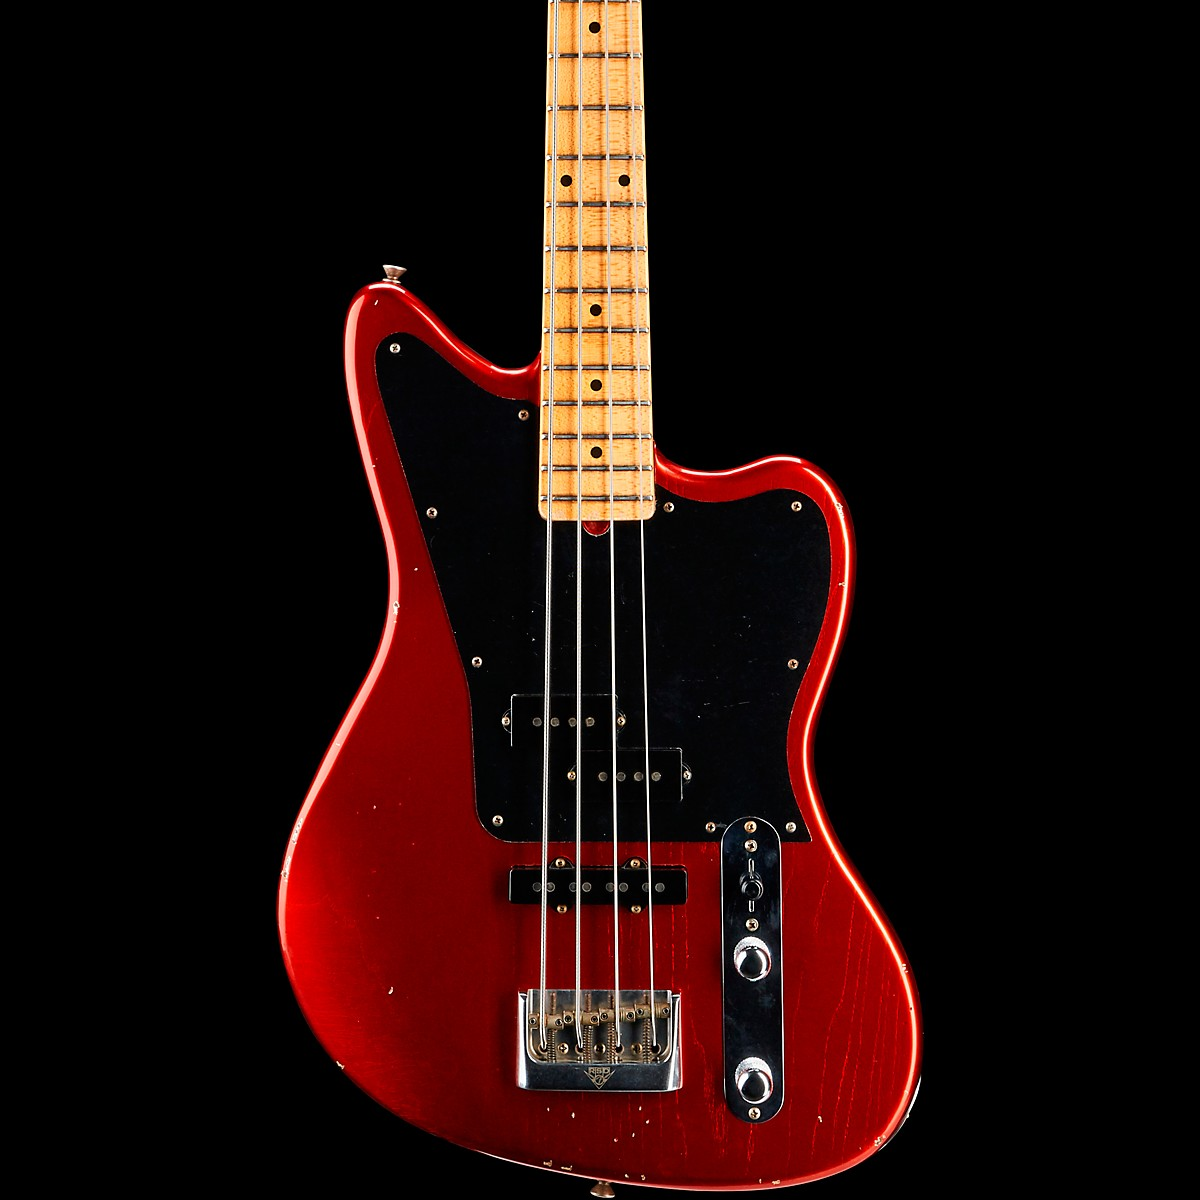 Fender Custom Shop Masterbuilt Jason Smith Offset Telecaster Bass Journeyman Relic